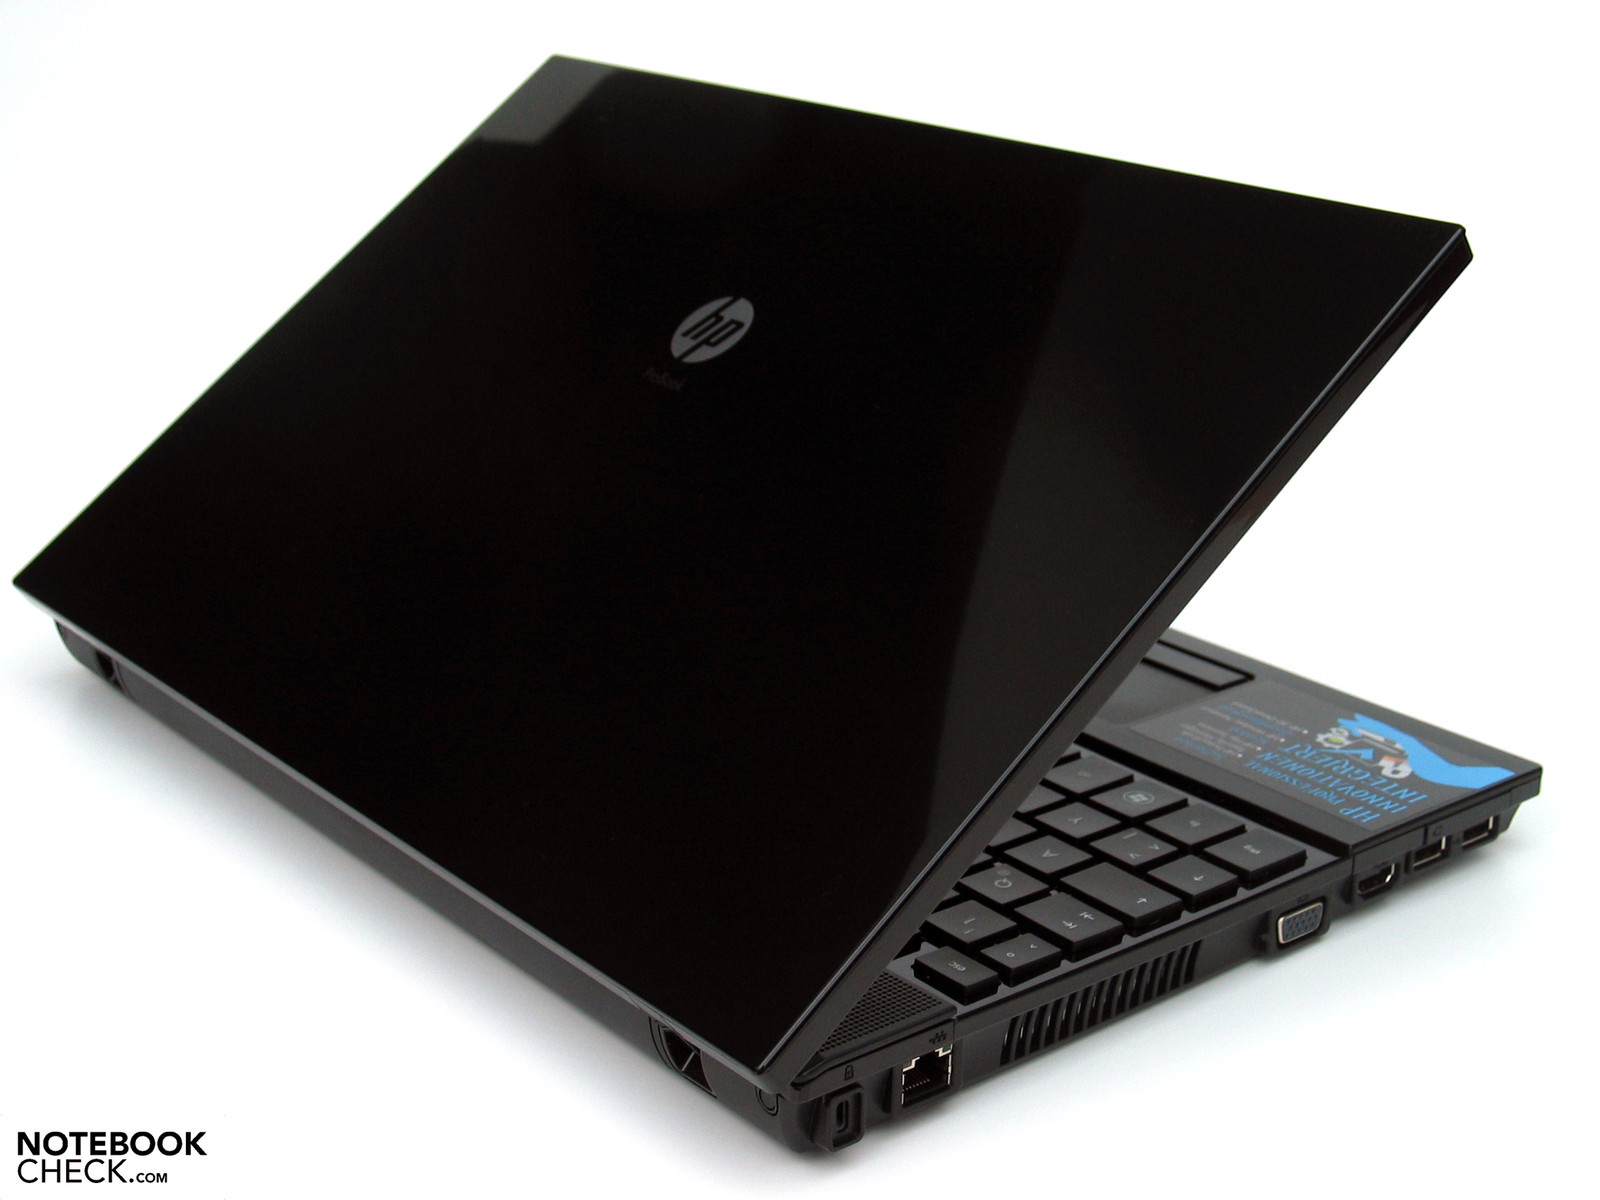 Hp notebook drivers for windows 7 - Hp Notebook Vga Driver Hp 250 G4 Notebook Pc Drivers Windows 7